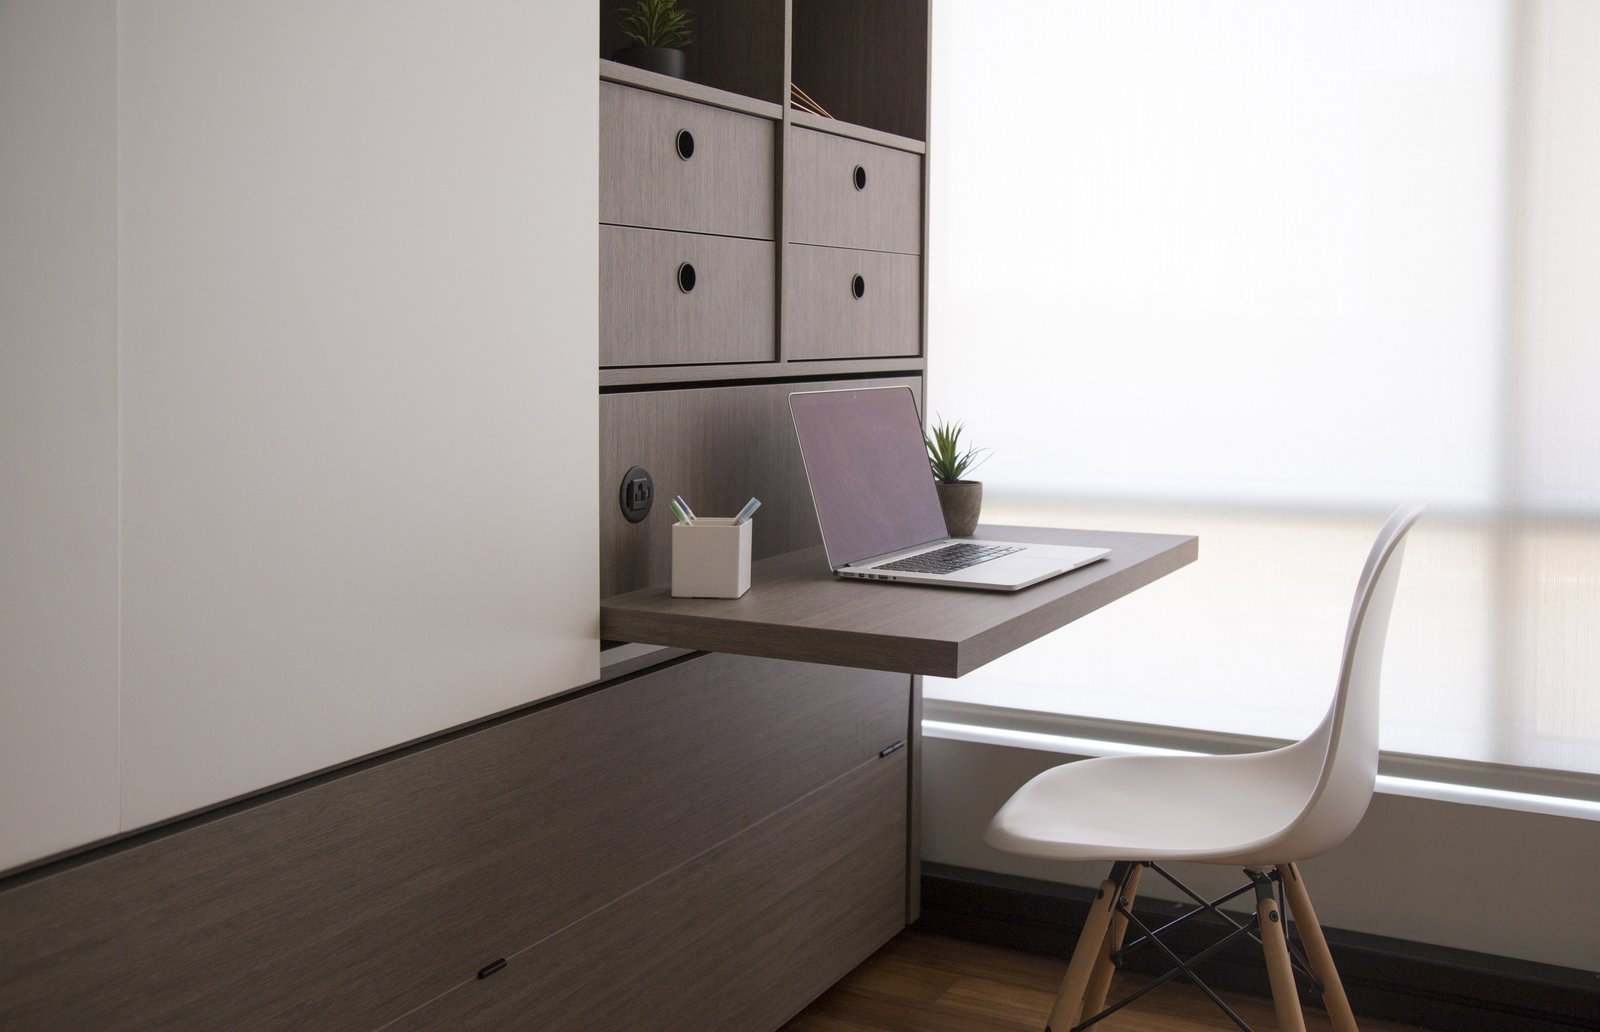 Photo 5 of 5 in Ori by Yves Béhar Is the New Robotic Furniture System Poised to Transform Urban Living